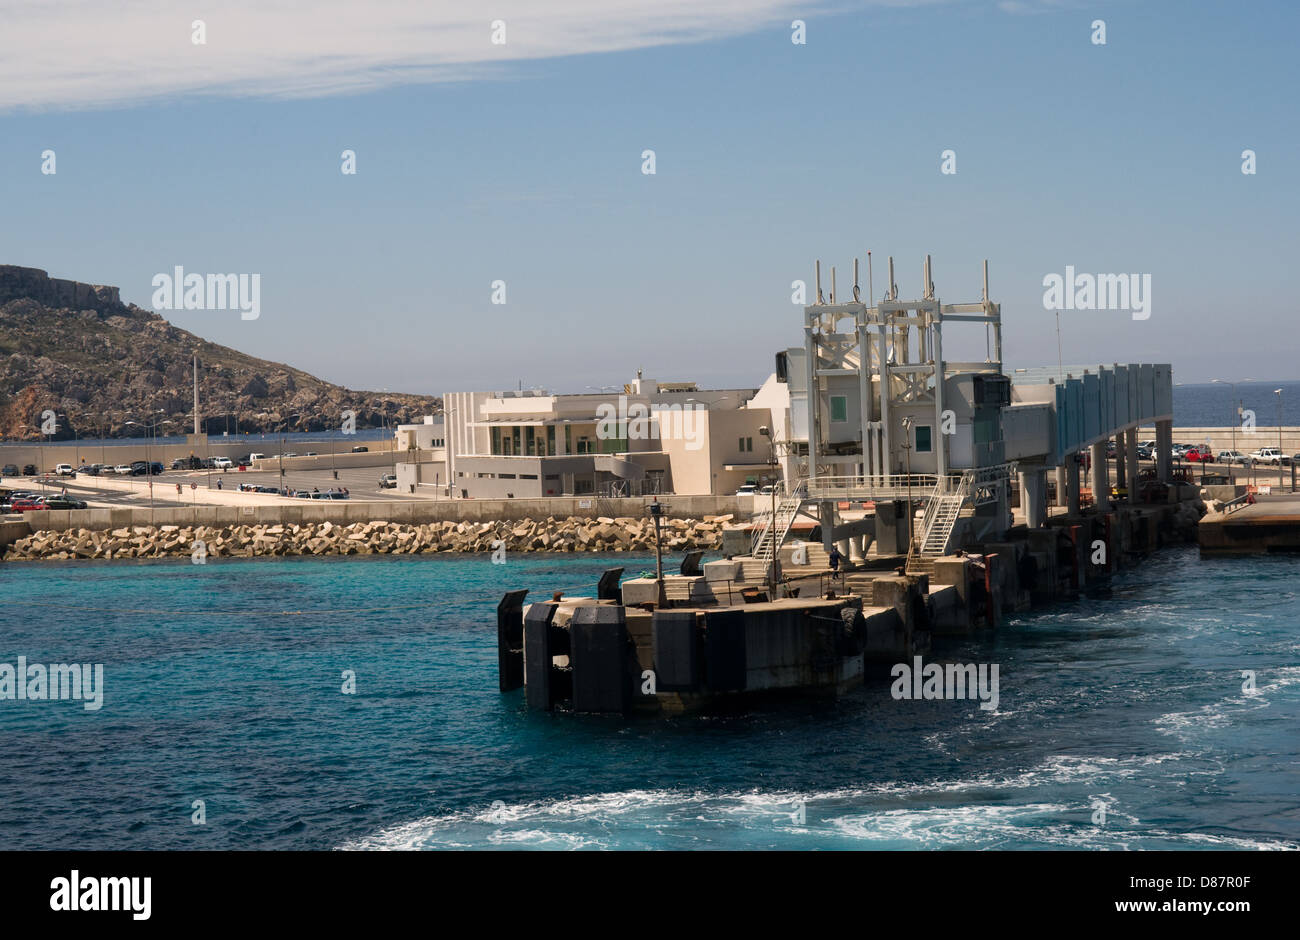 The new ferry terminal at Cirkewwa, Malta  for the ferries to Gozo. Passengers now board through side ramps rather - Stock Image